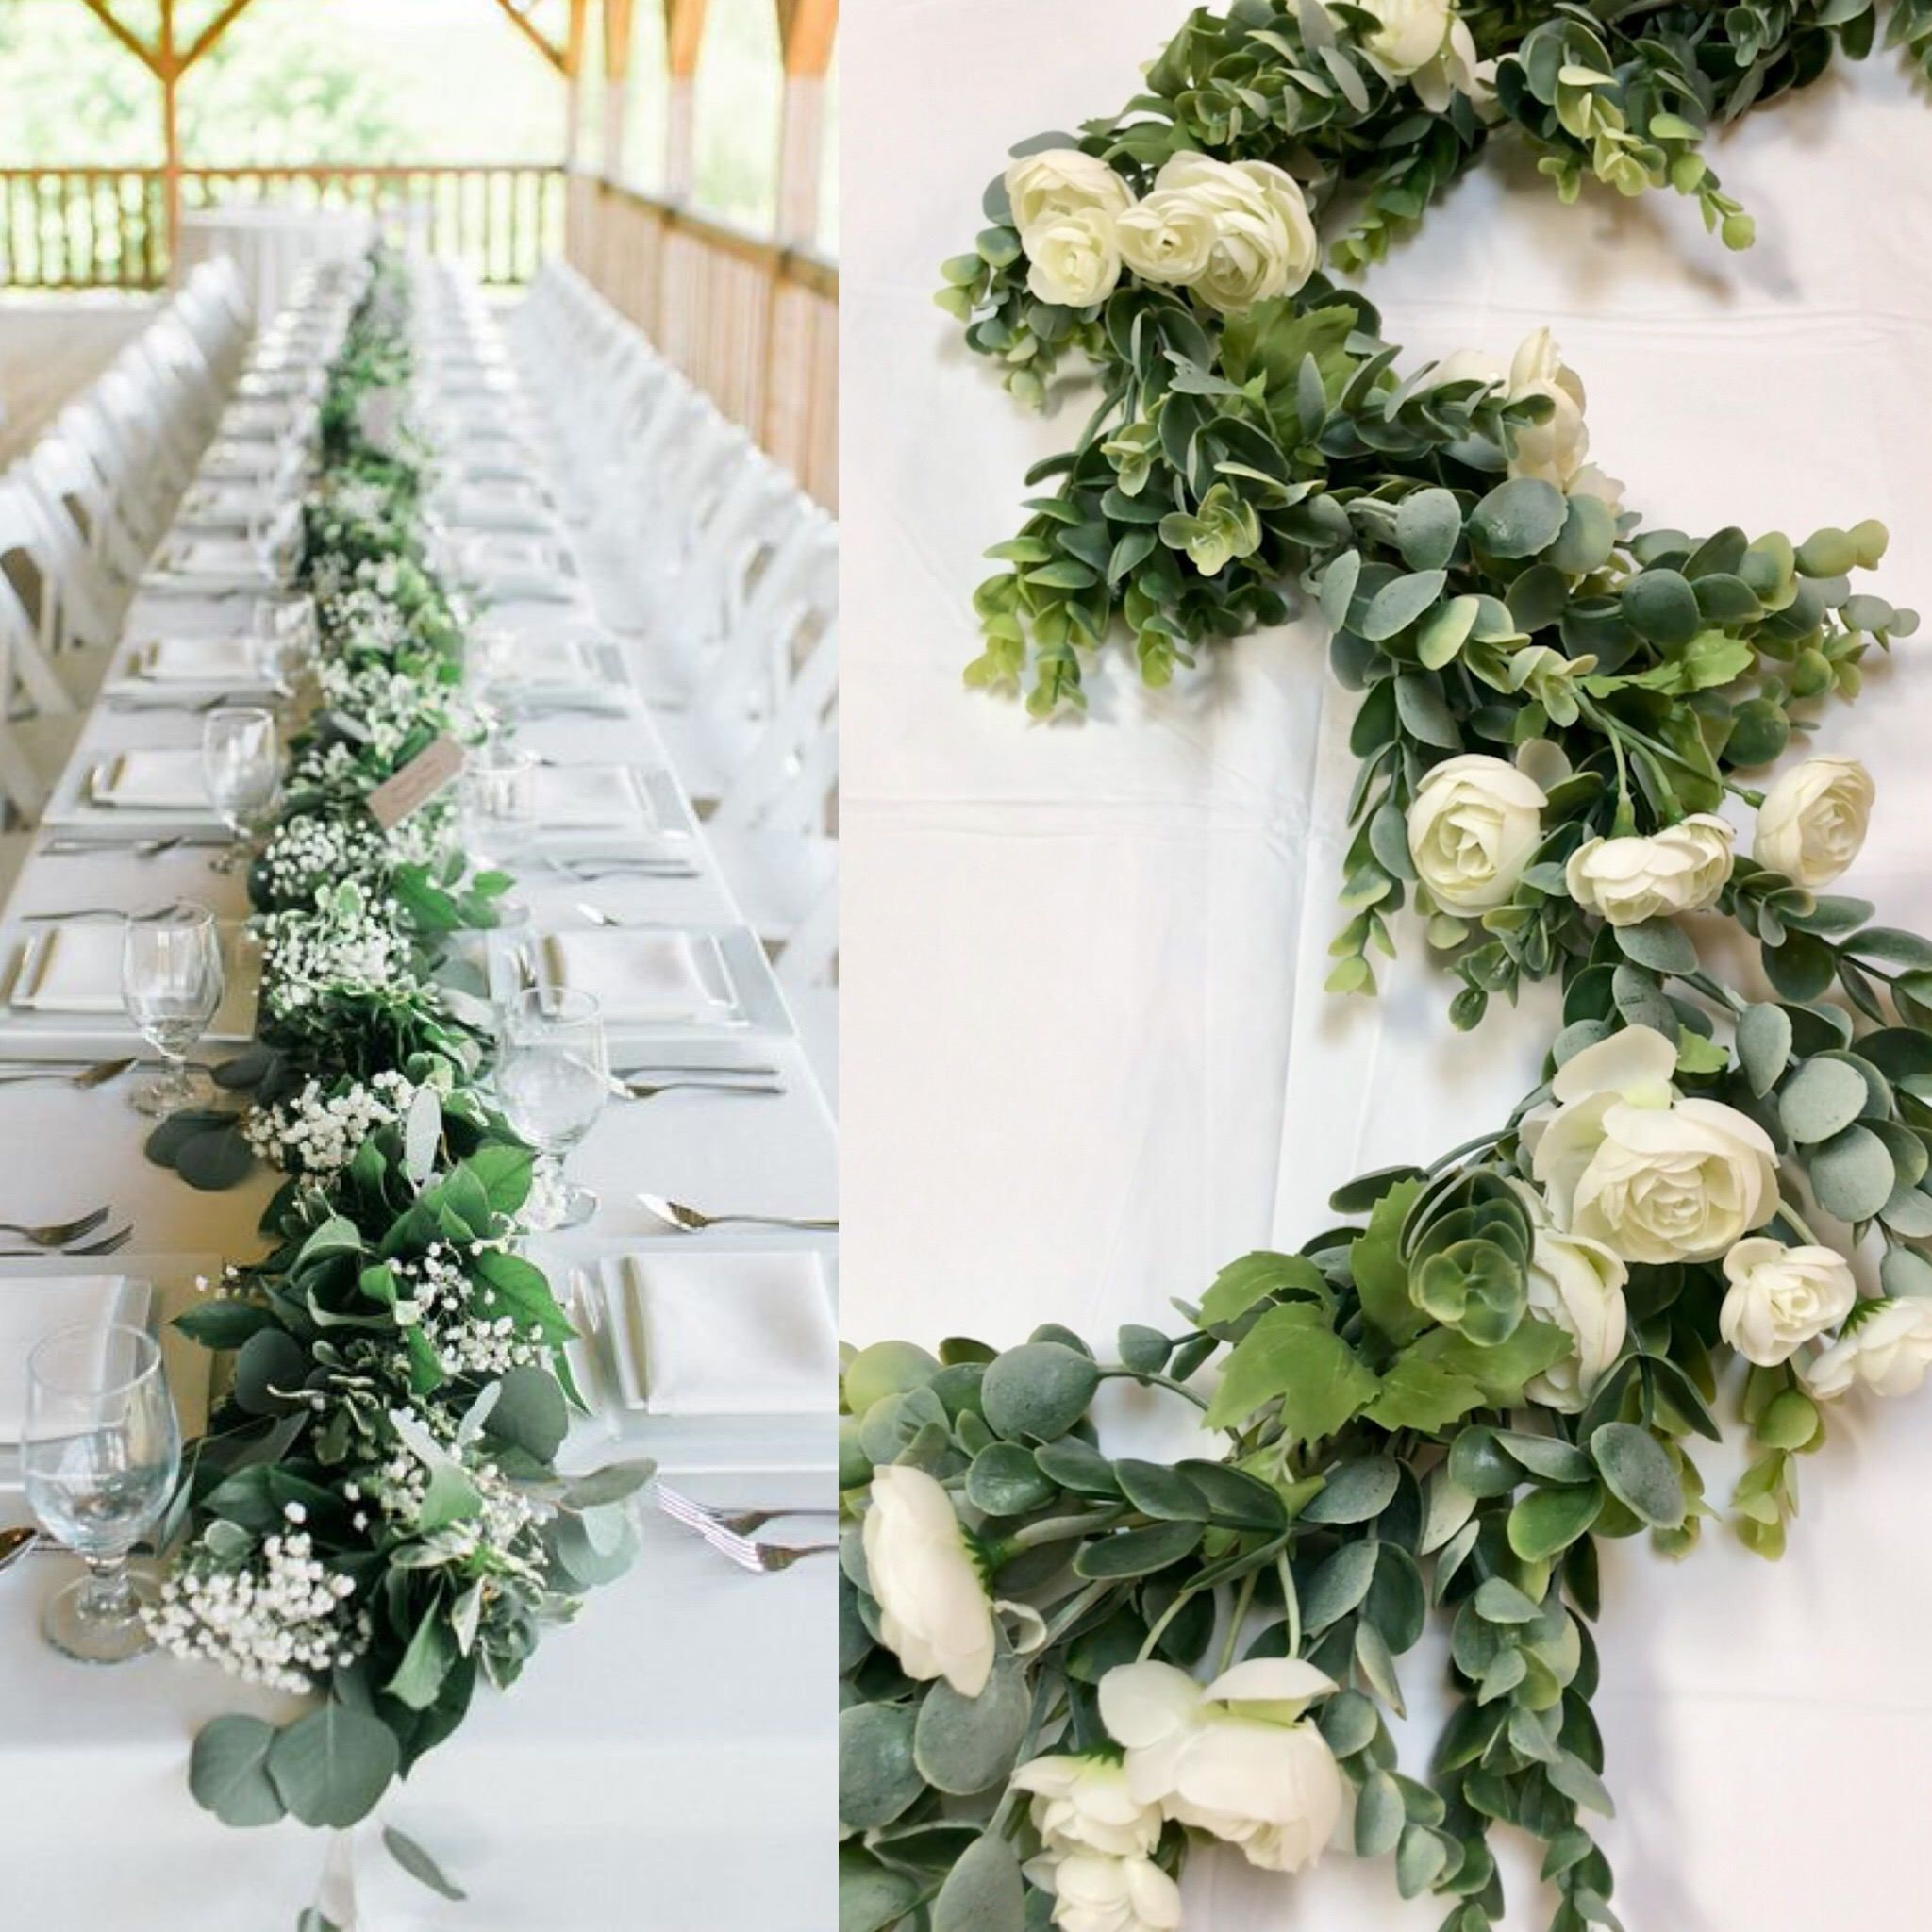 Wedding centerpieces Wedding Garland Greenery Garland Arbor Swag ...